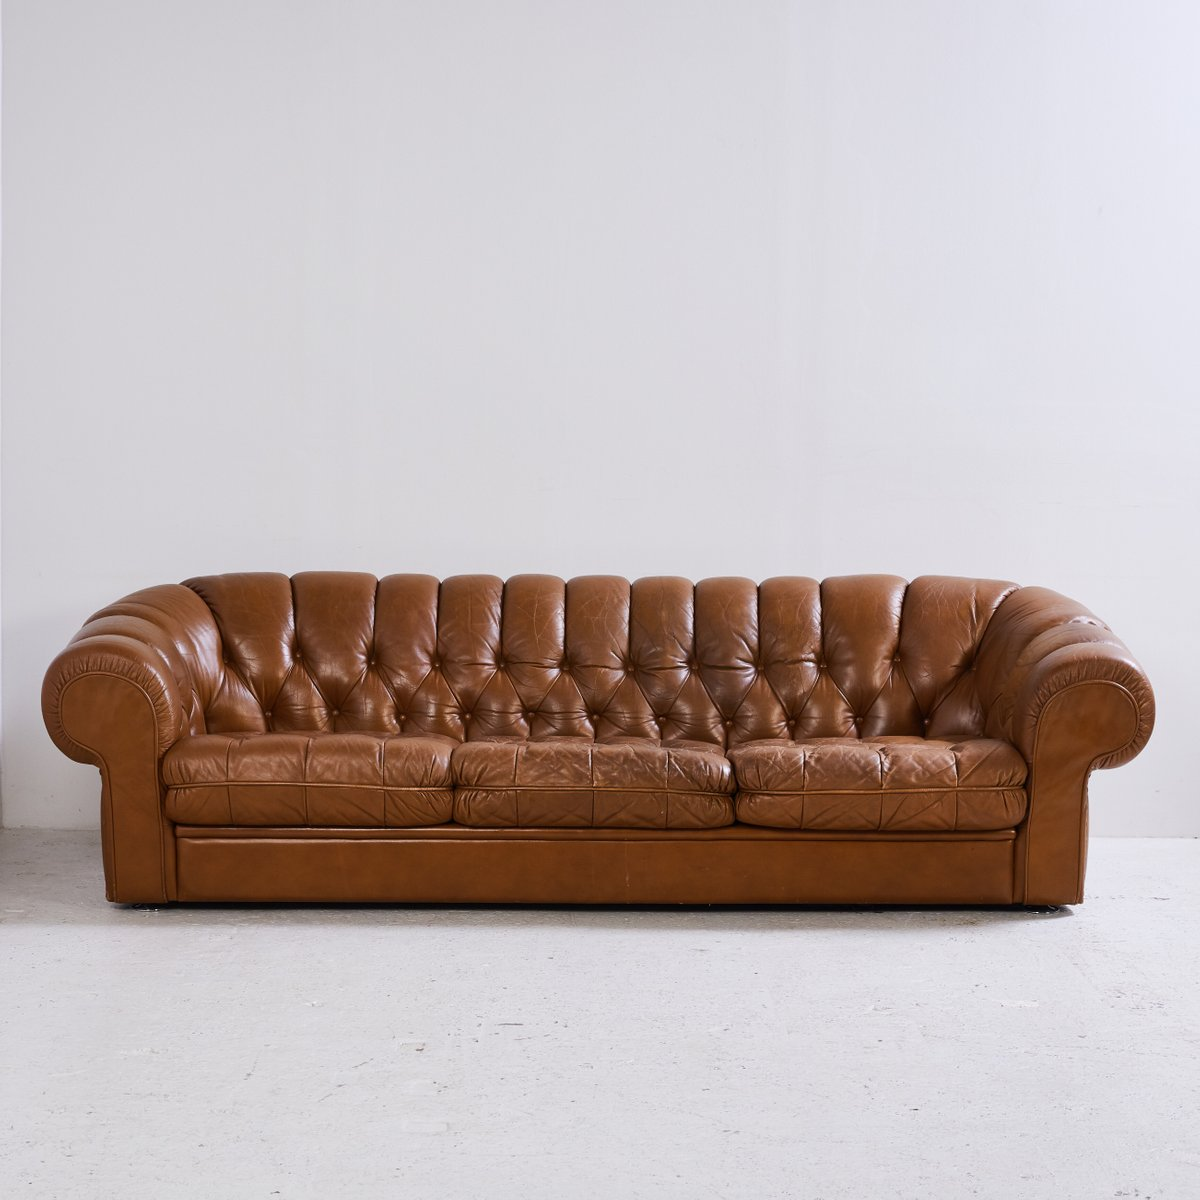 Chesterfield Leather Sofa Set 1970s For Sale At Pamono